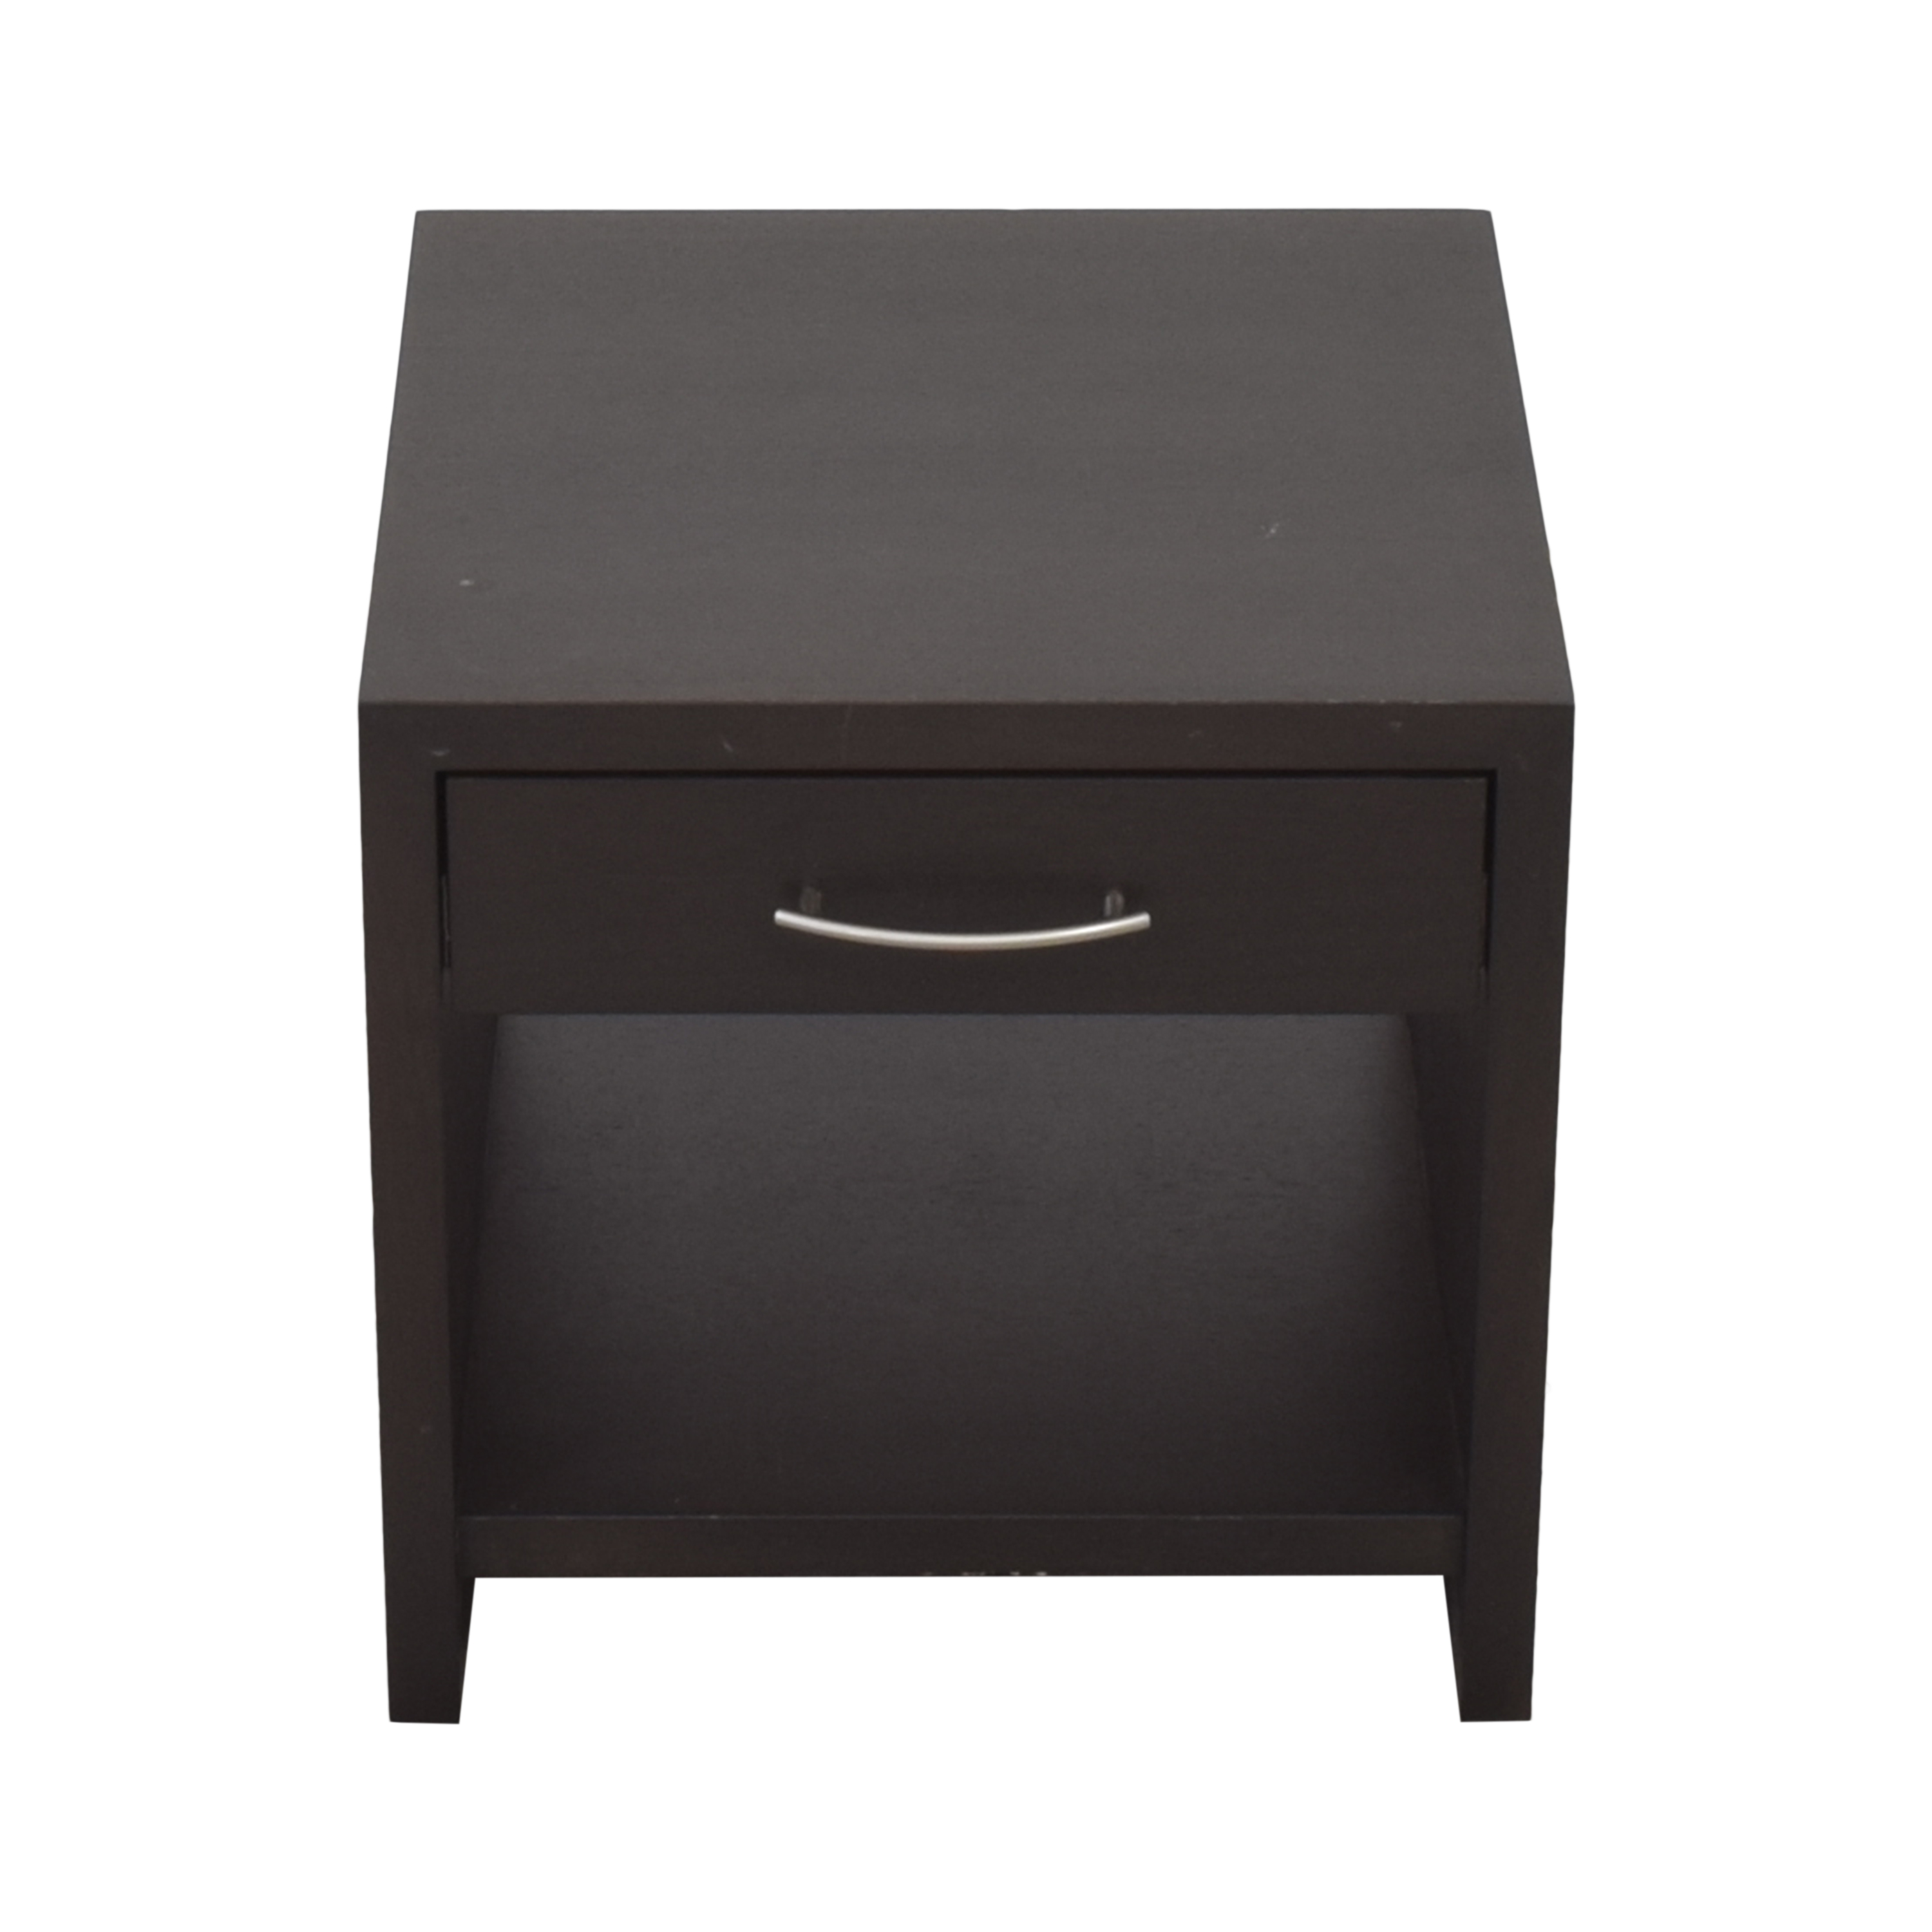 Domus Design Center Domus Design Center Modern Nightstand ma